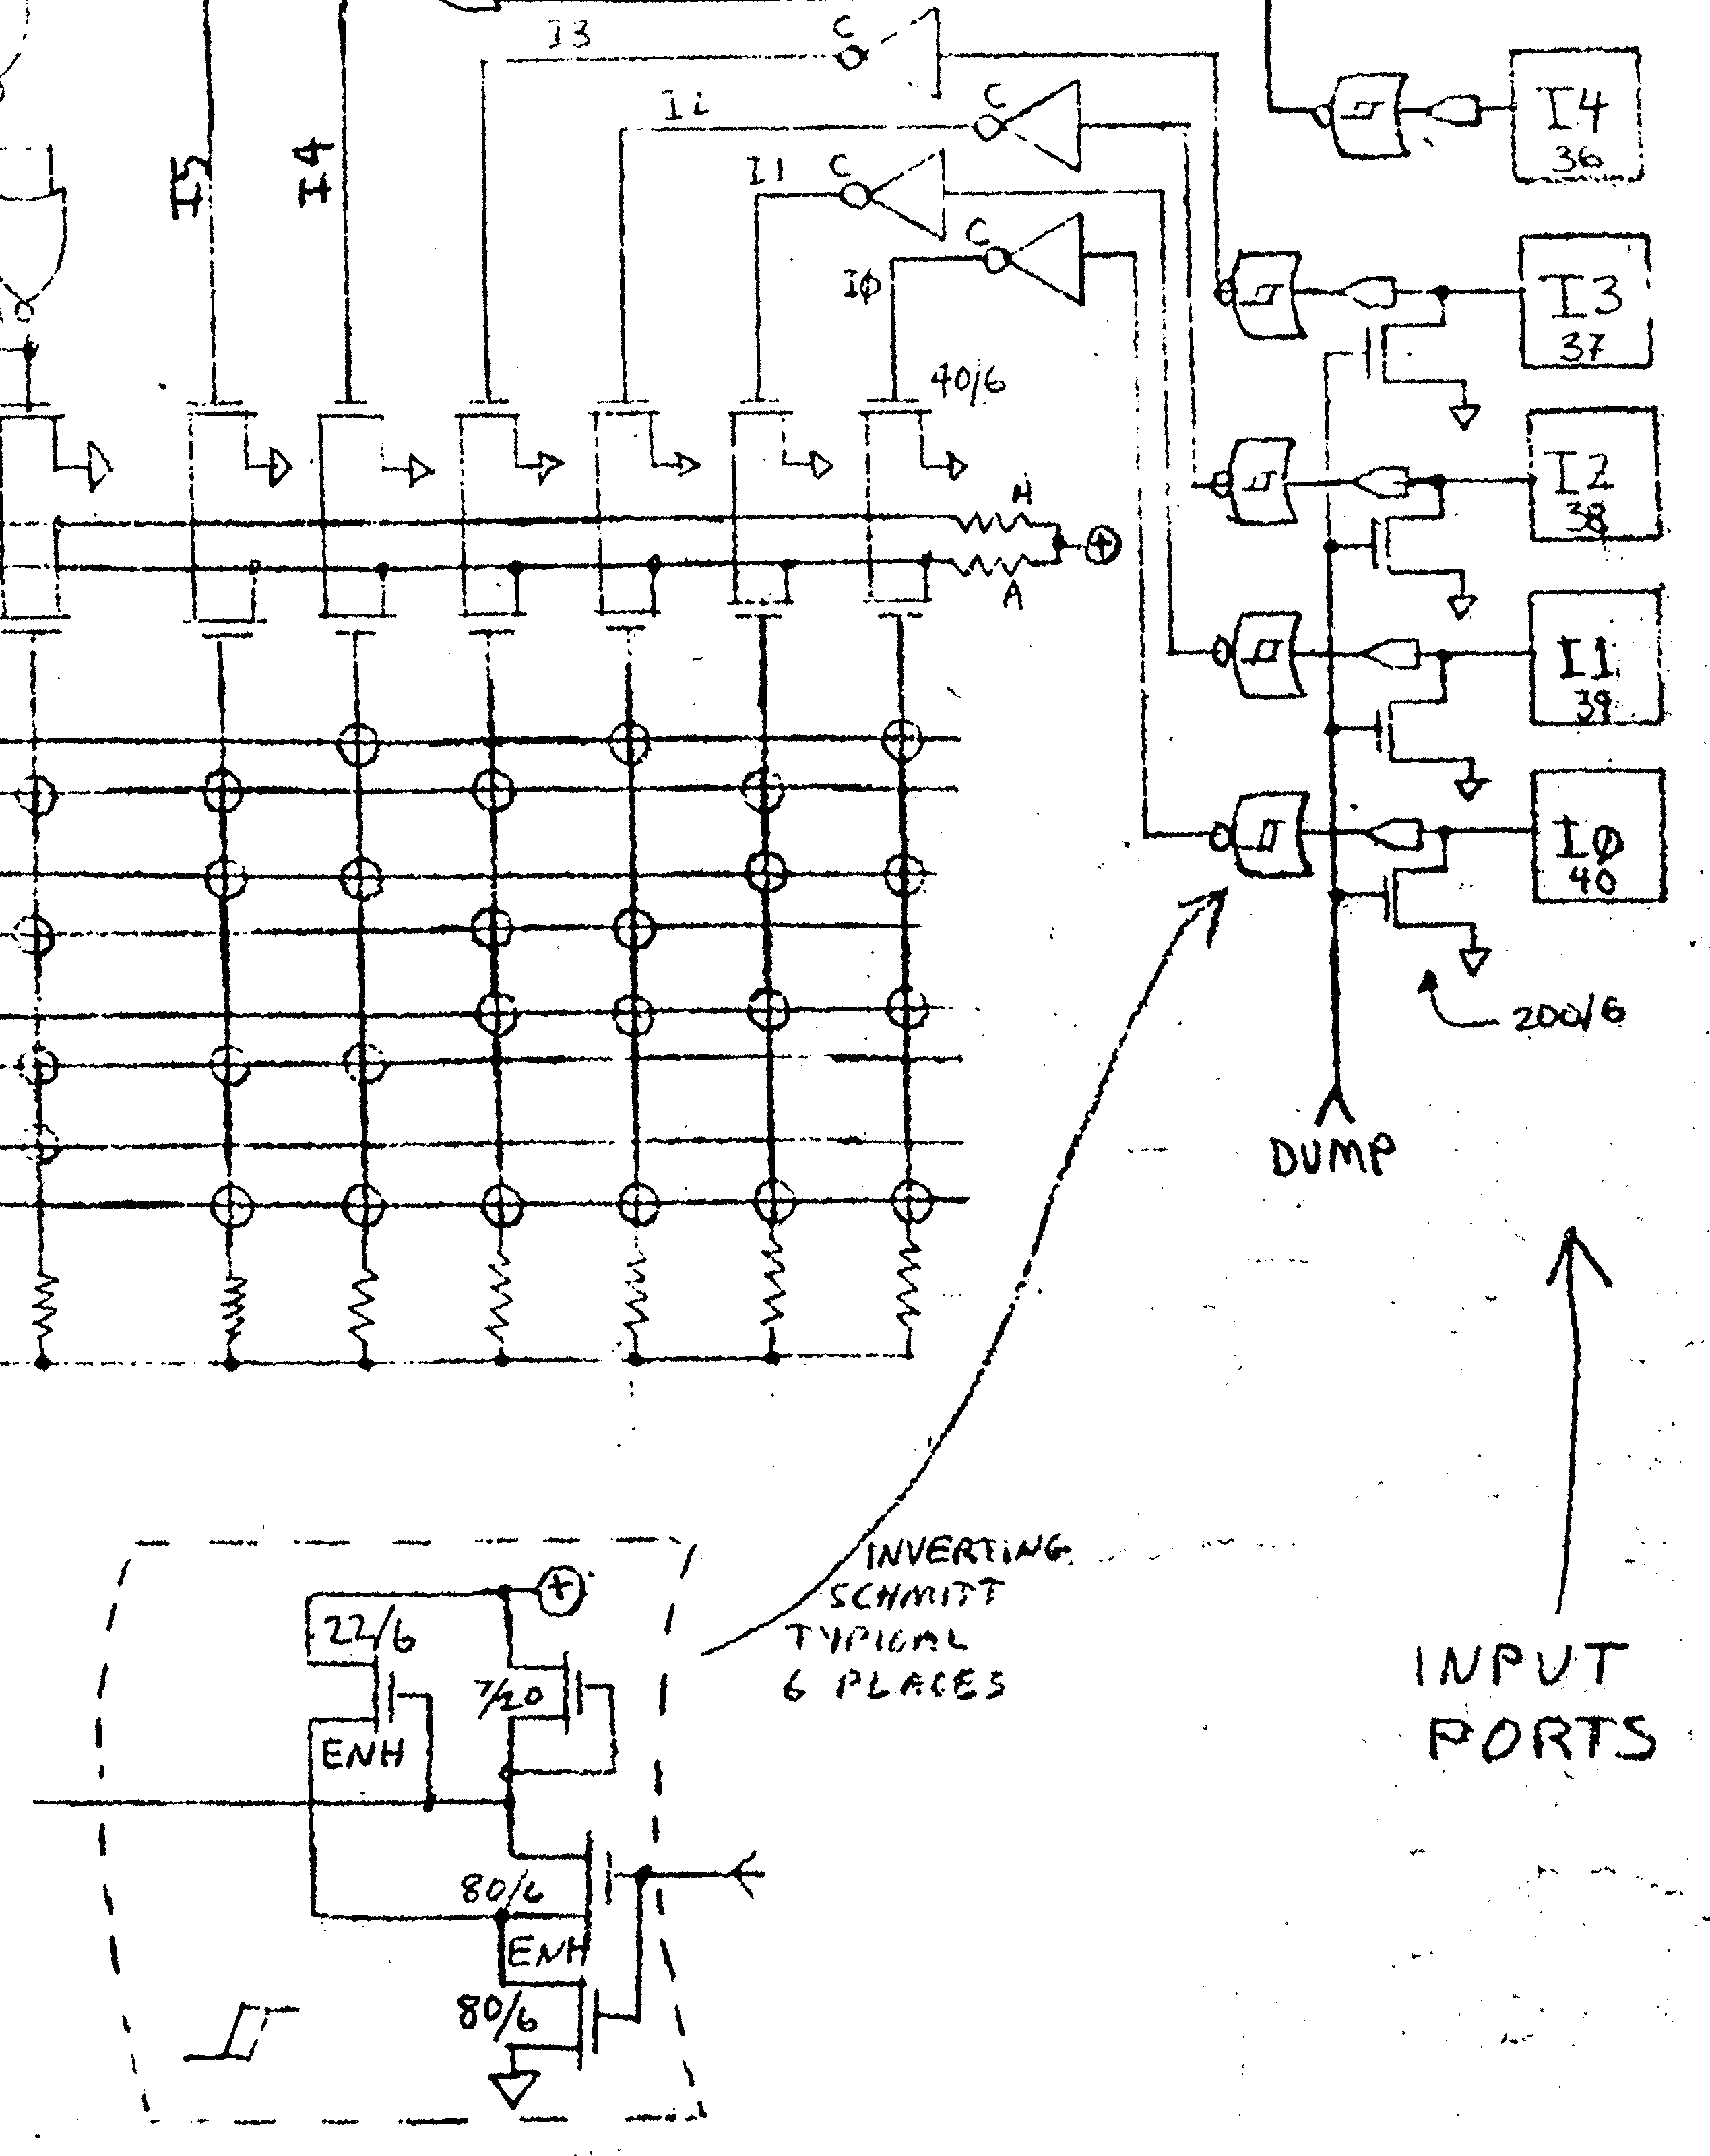 Vectrex Controller To Atari 2600 Adapter Cnk The Lm324 Quad Comparator Circuit Images Frompo Sheet Two Of Tia Schematic Contains Paddle Section In Upper Right